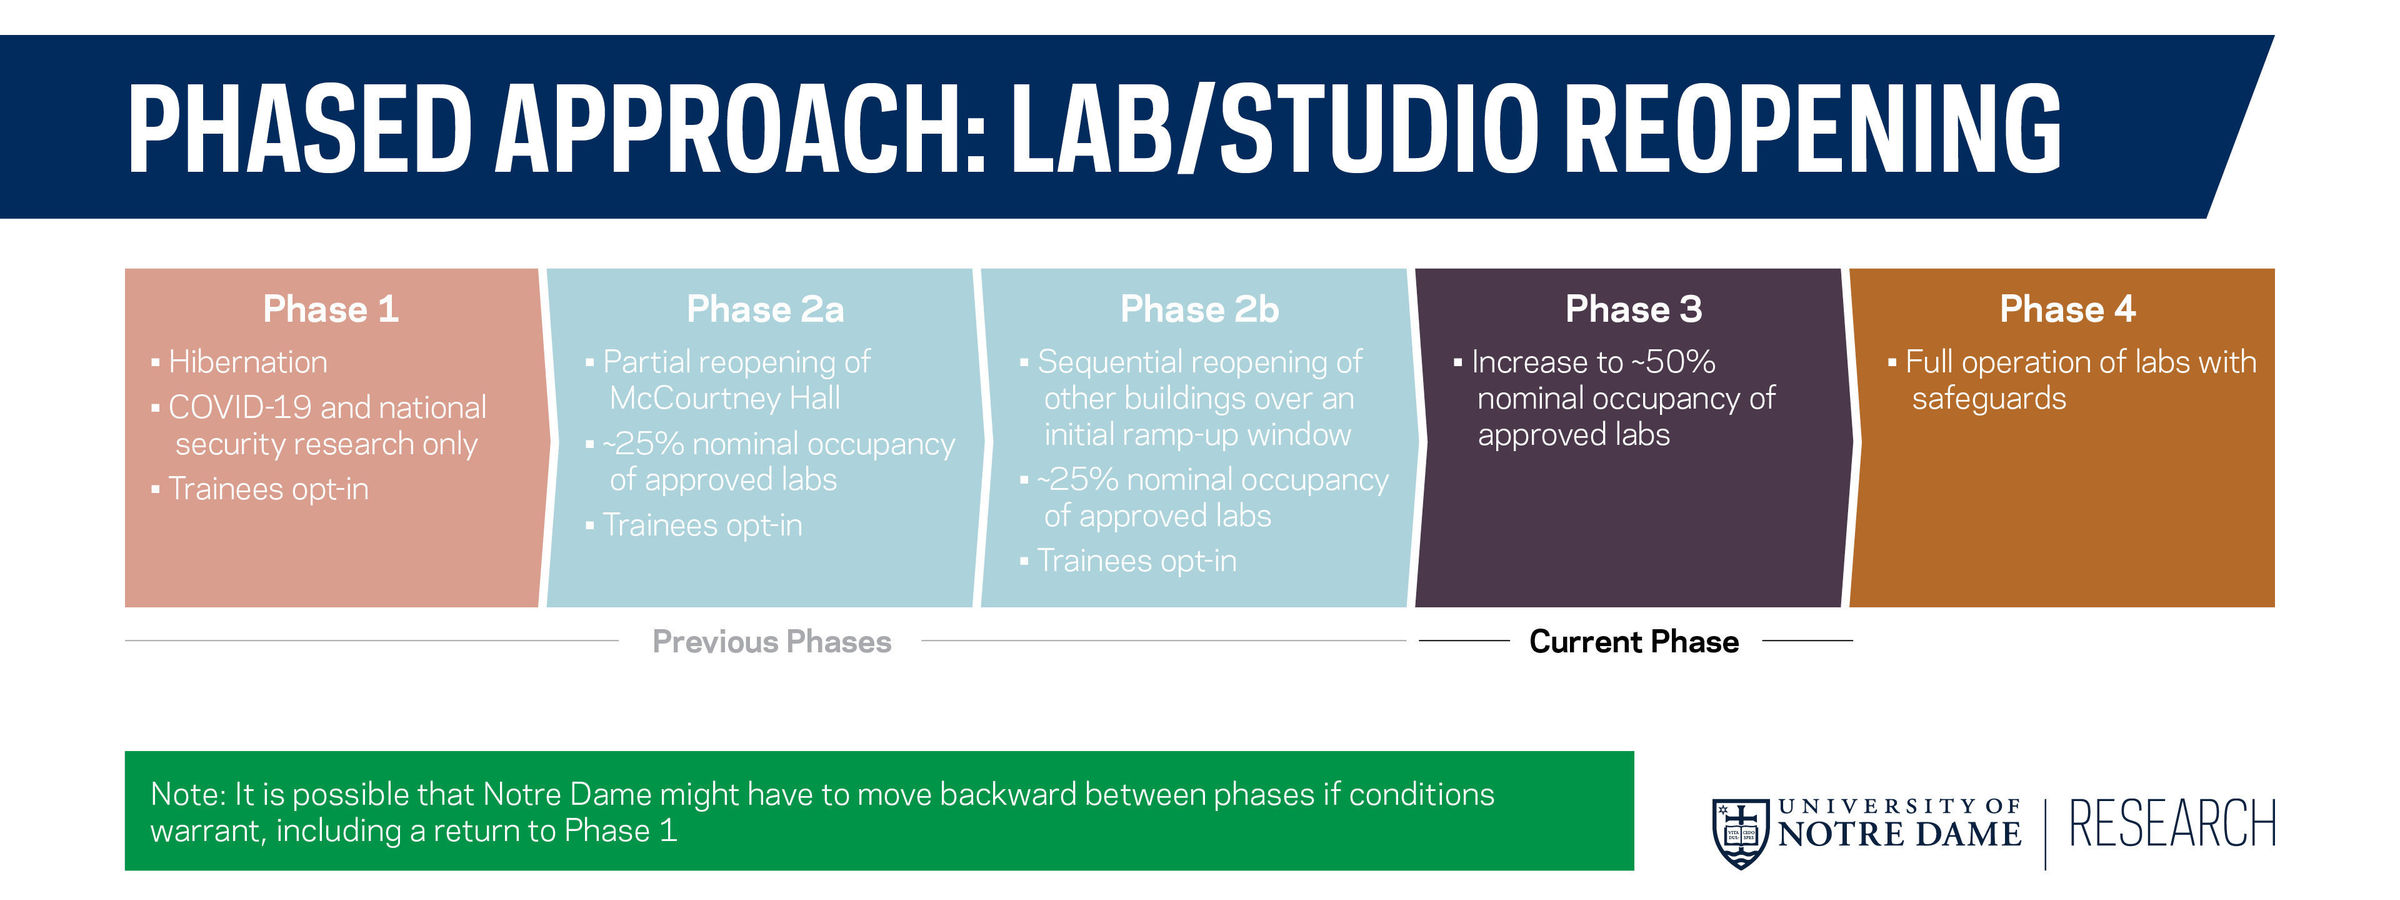 Labstudiocores Reopening Graphics C2 Phases Phase3